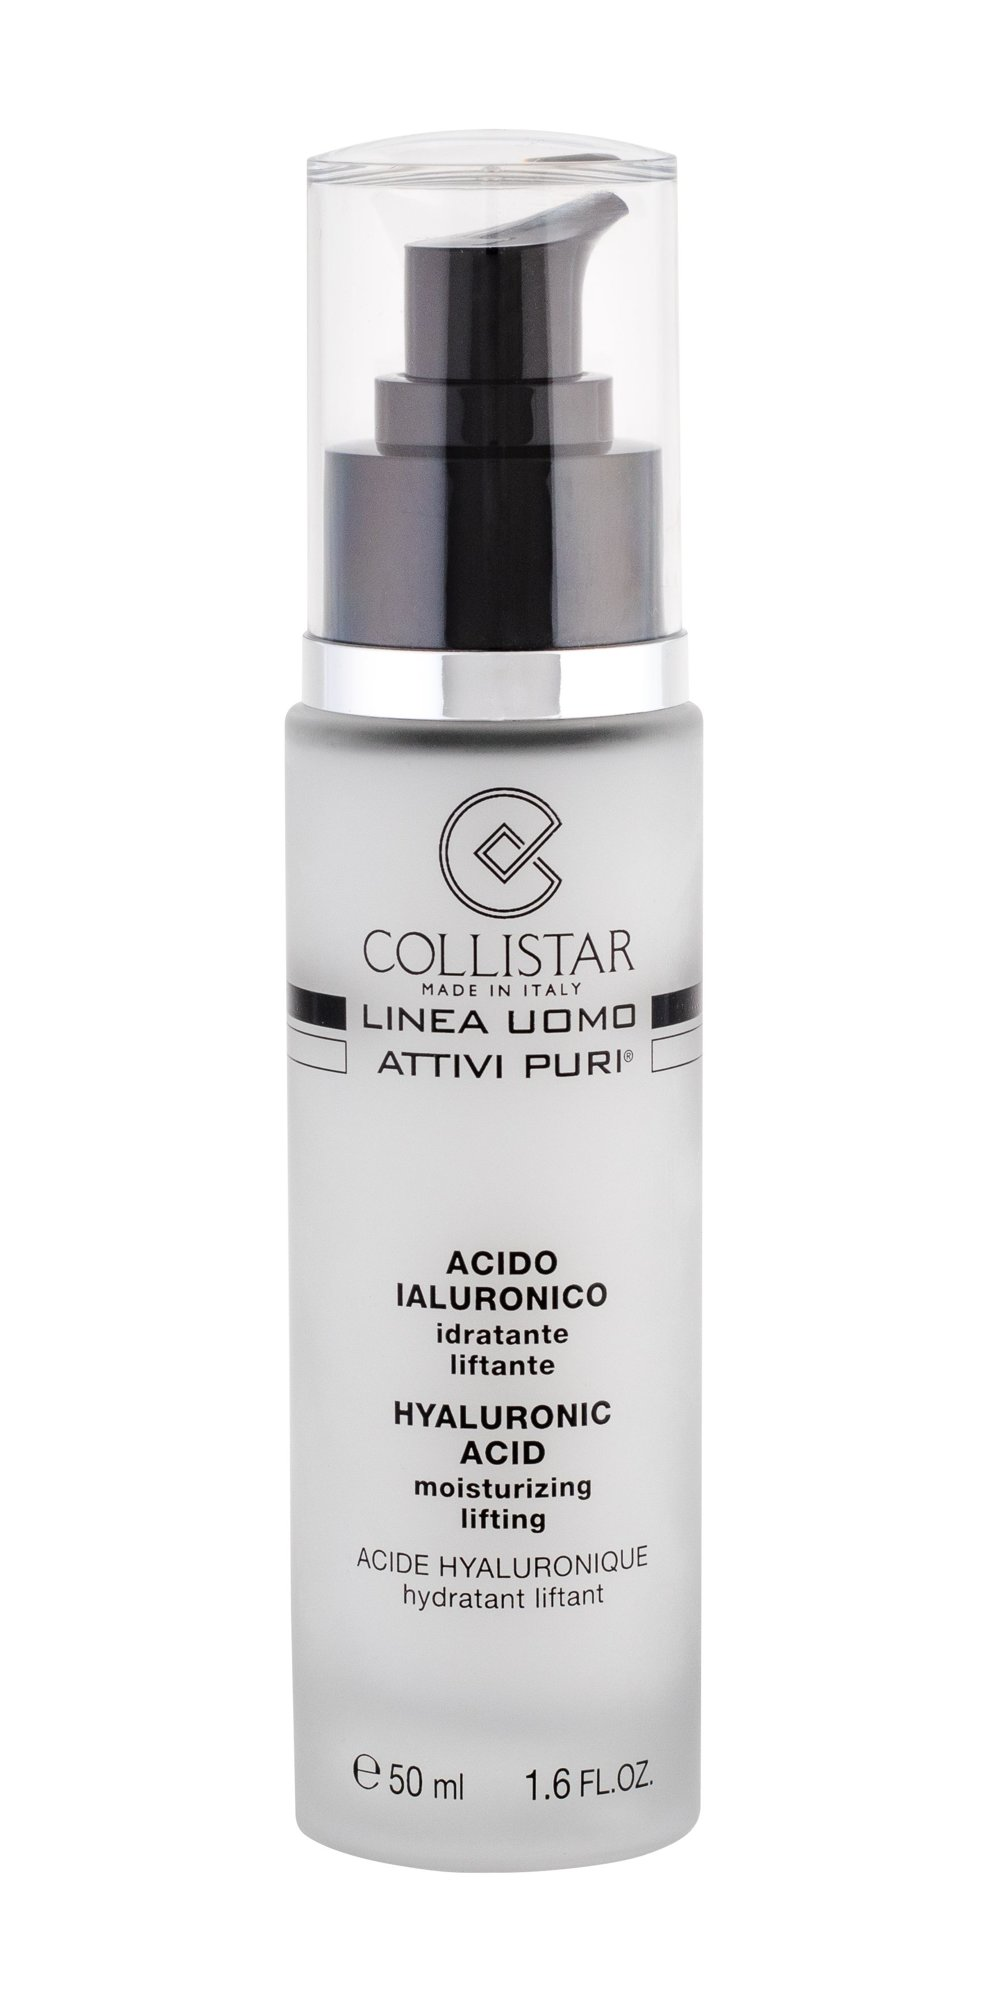 Collistar Linea Uomo Skin Serum 50ml